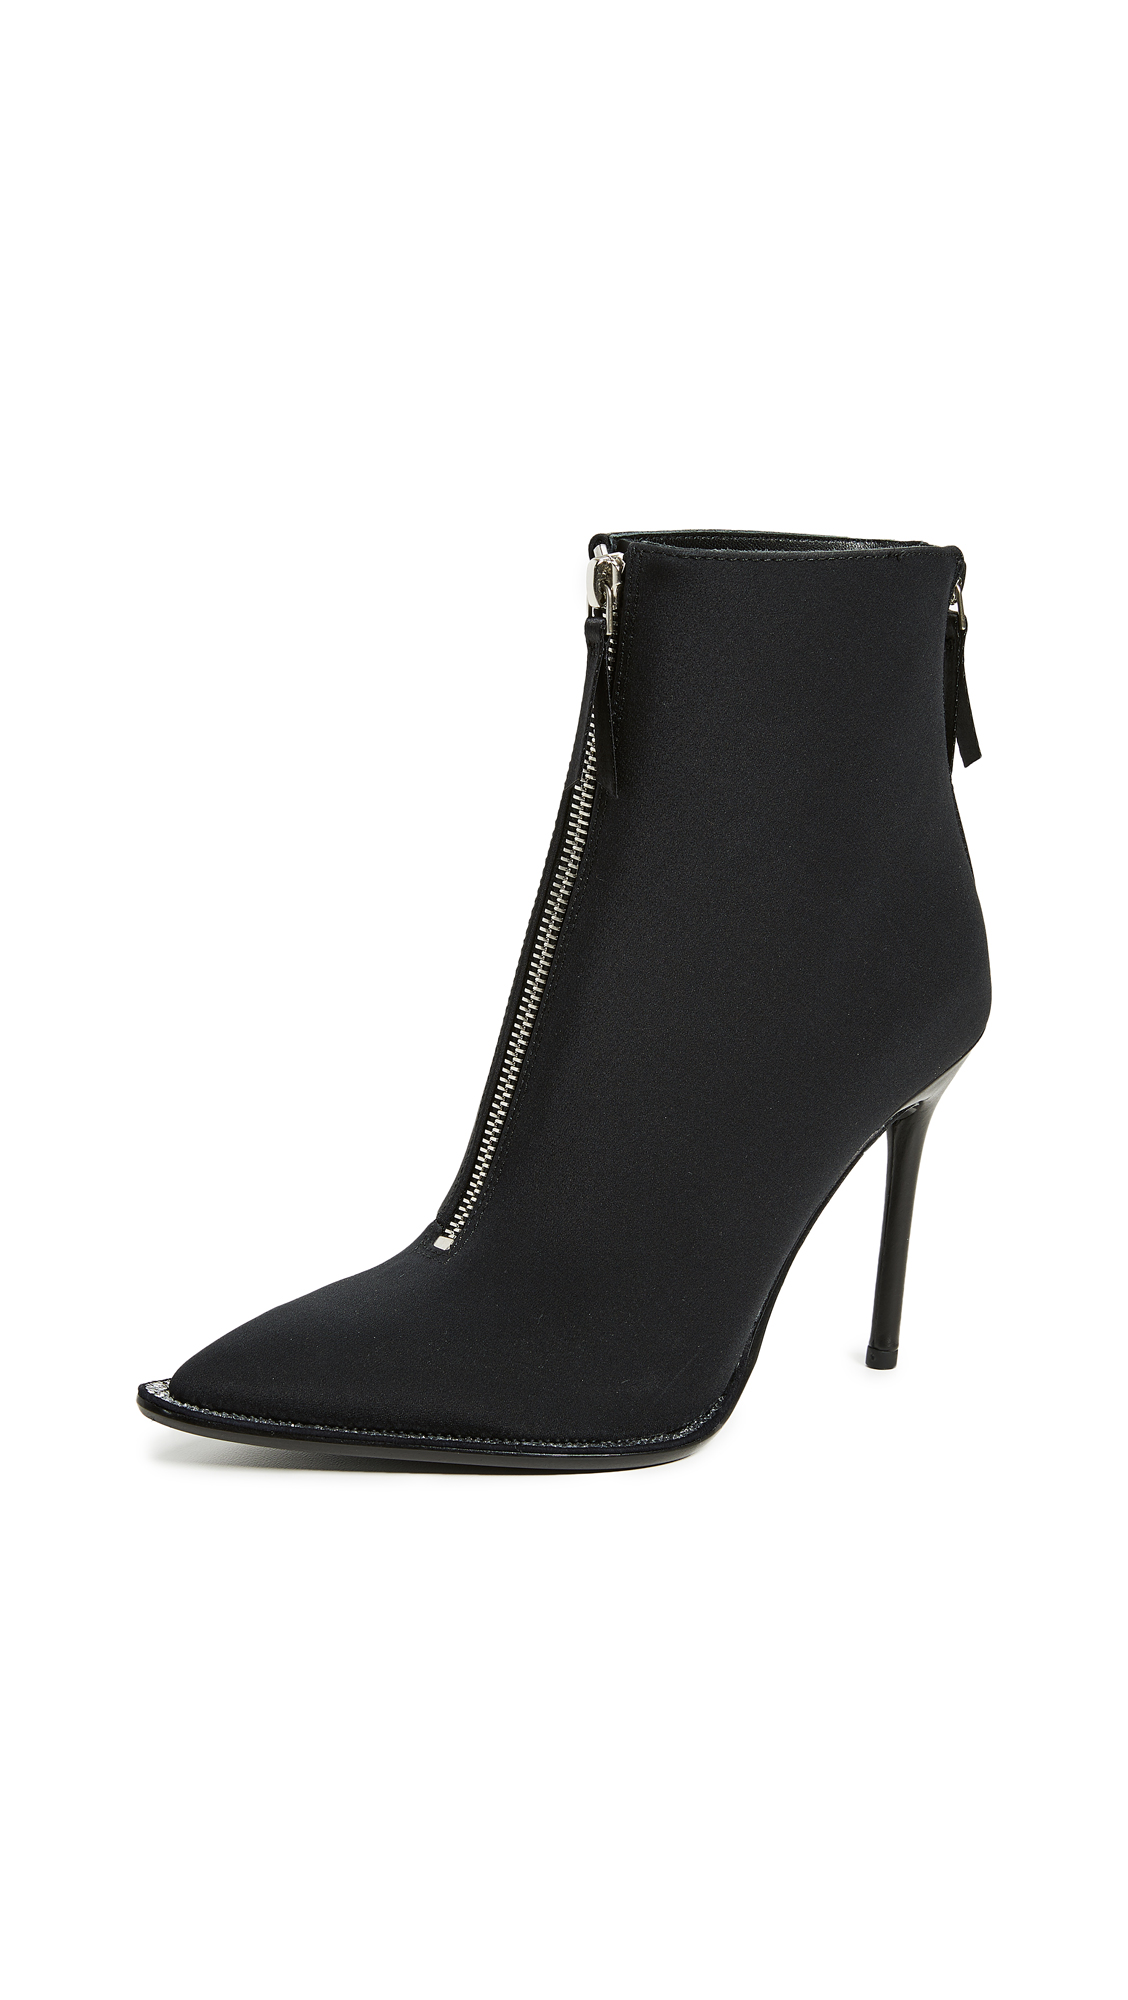 Alexander Wang Eri Nylon Booties - Black